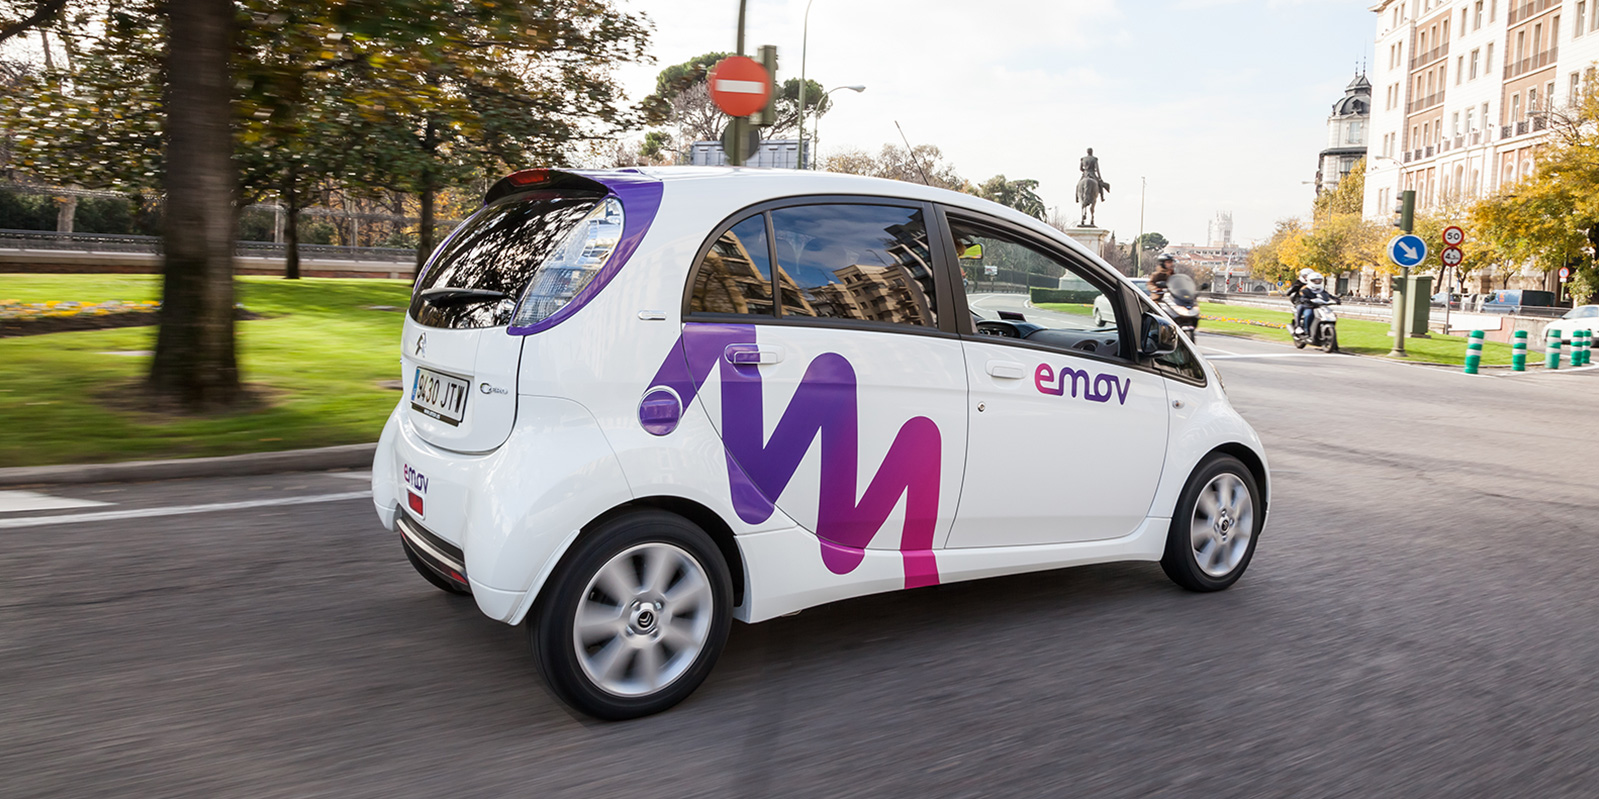 emov propose 500 Citroën C-zero en autopartage (photo : Eysa)